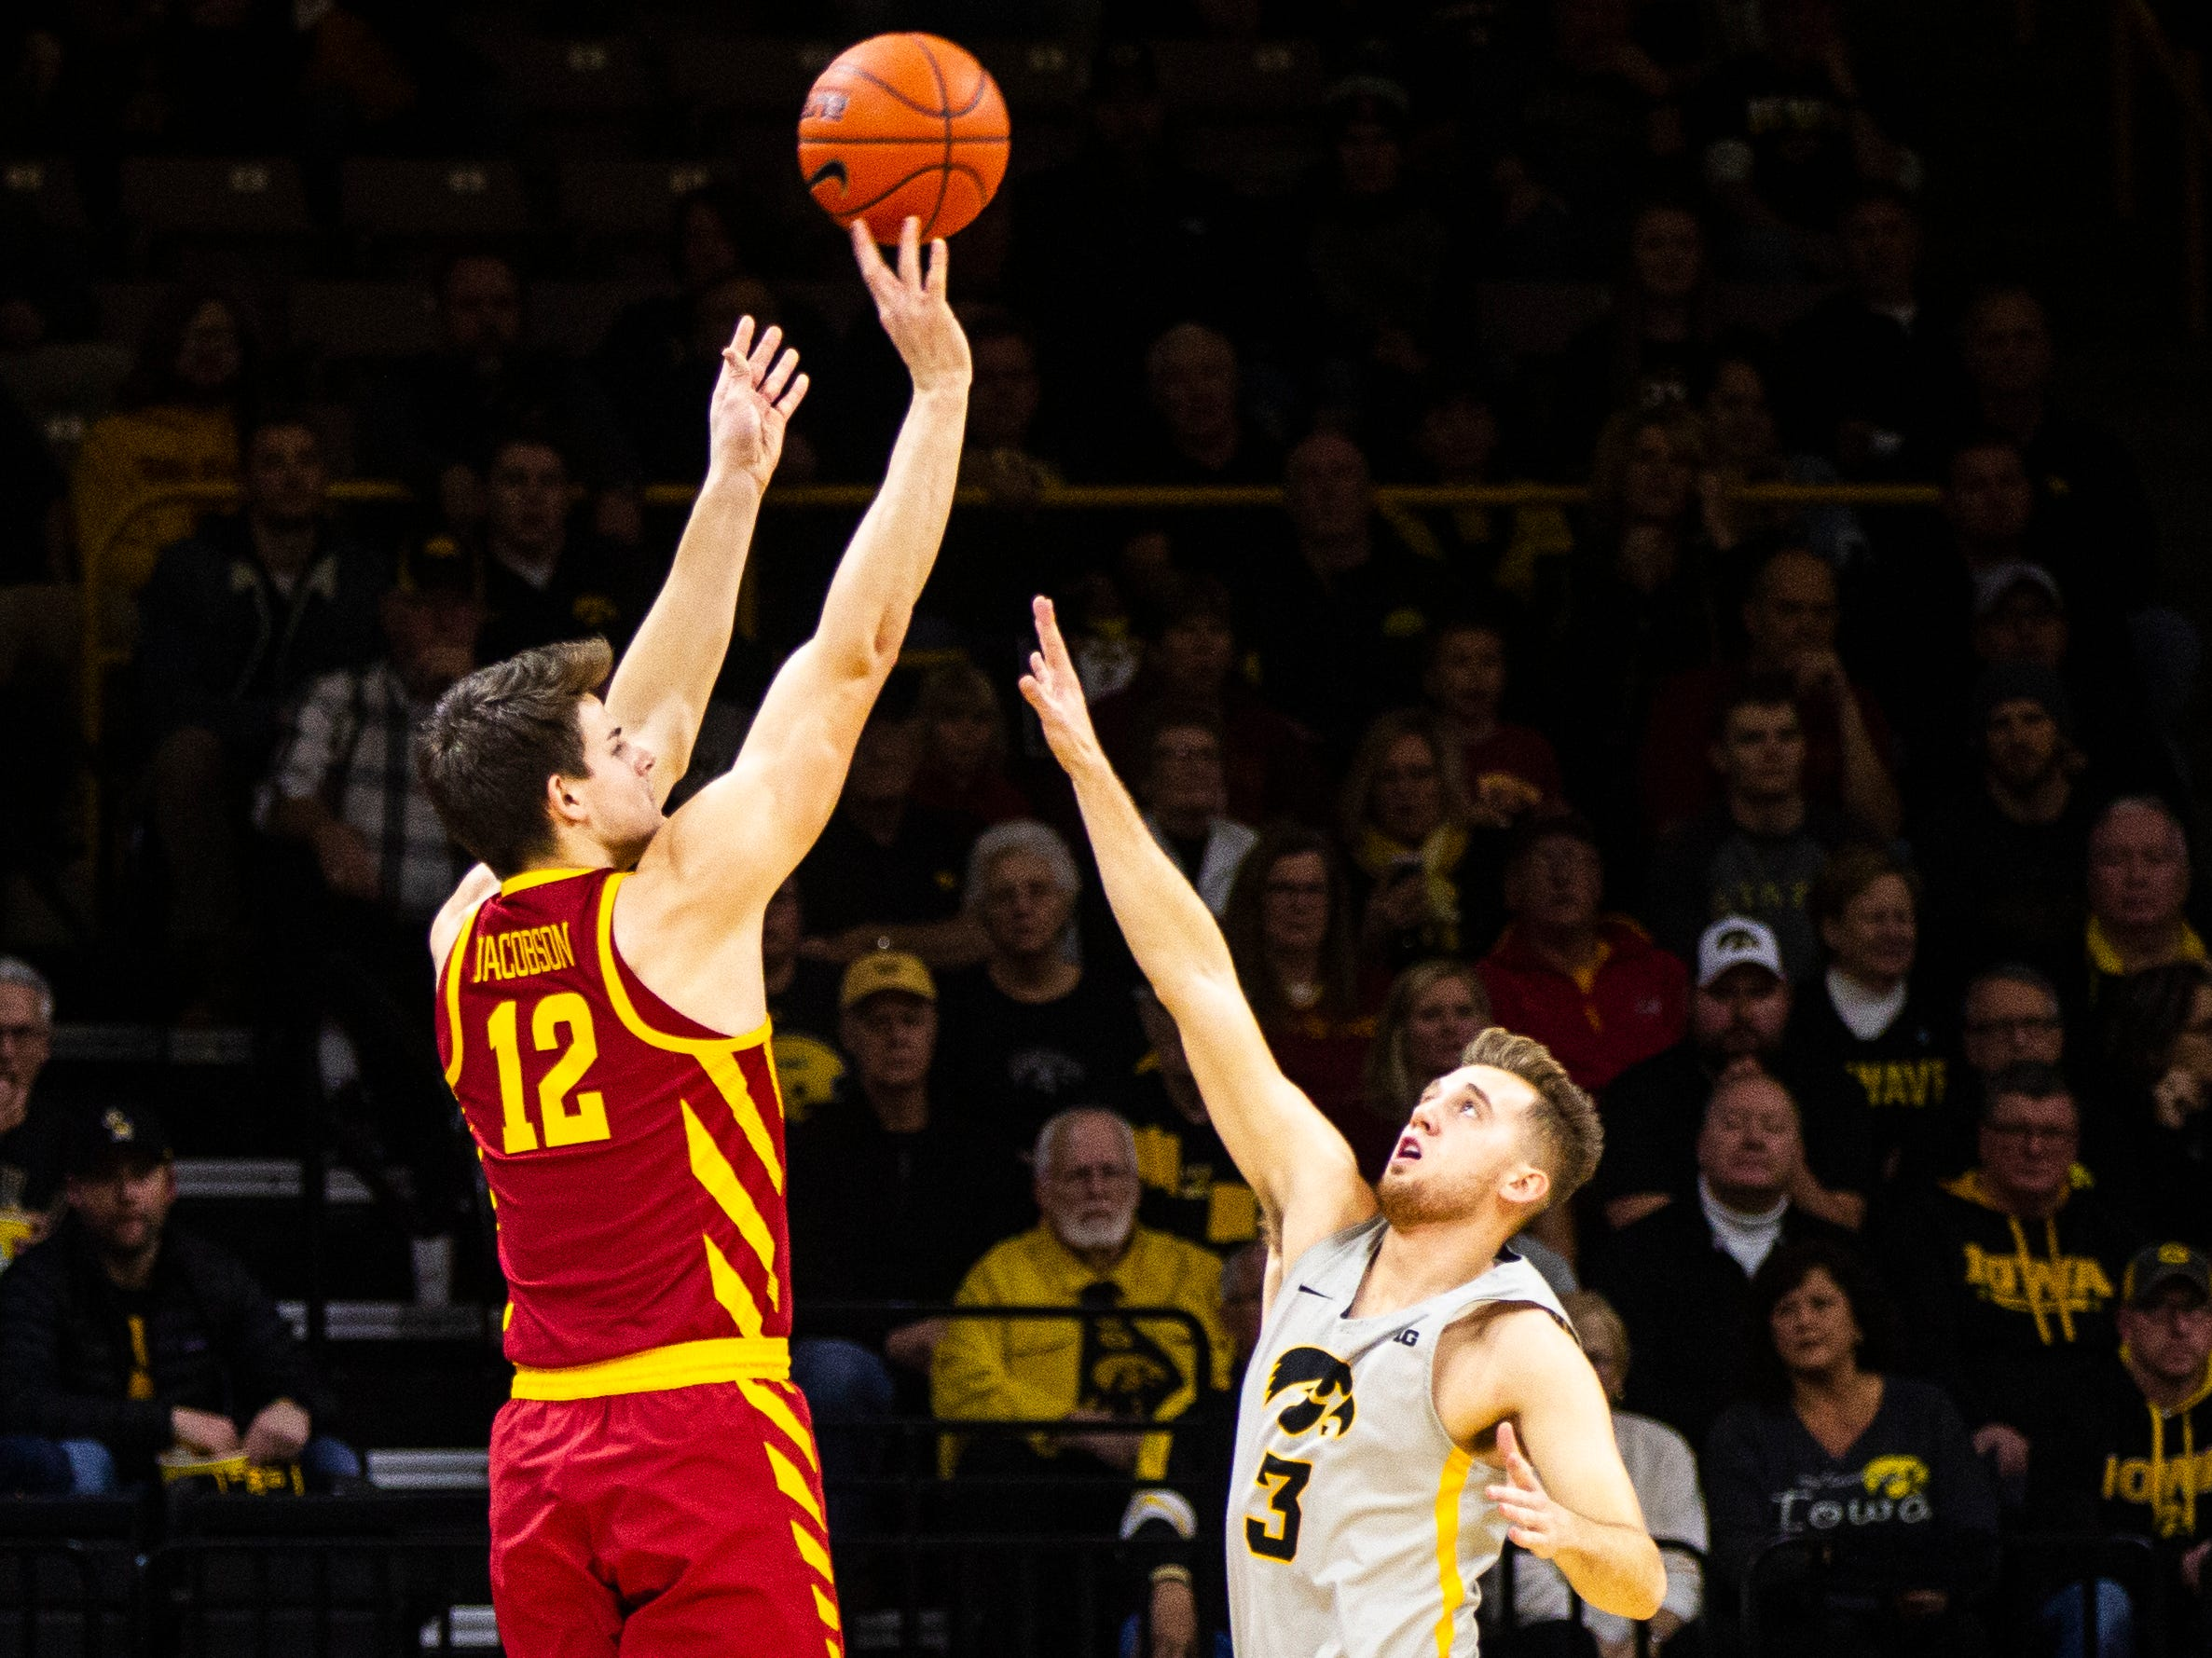 Iowa State forward Michael Jacobson (12) shoots a 3-point basket over Iowa guard Jordan Bohannon (3) during a NCAA Cy-Hawk series men's basketball game on Thursday, Dec. 6, 2018, at Carver-Hawkeye Arena in Iowa City.